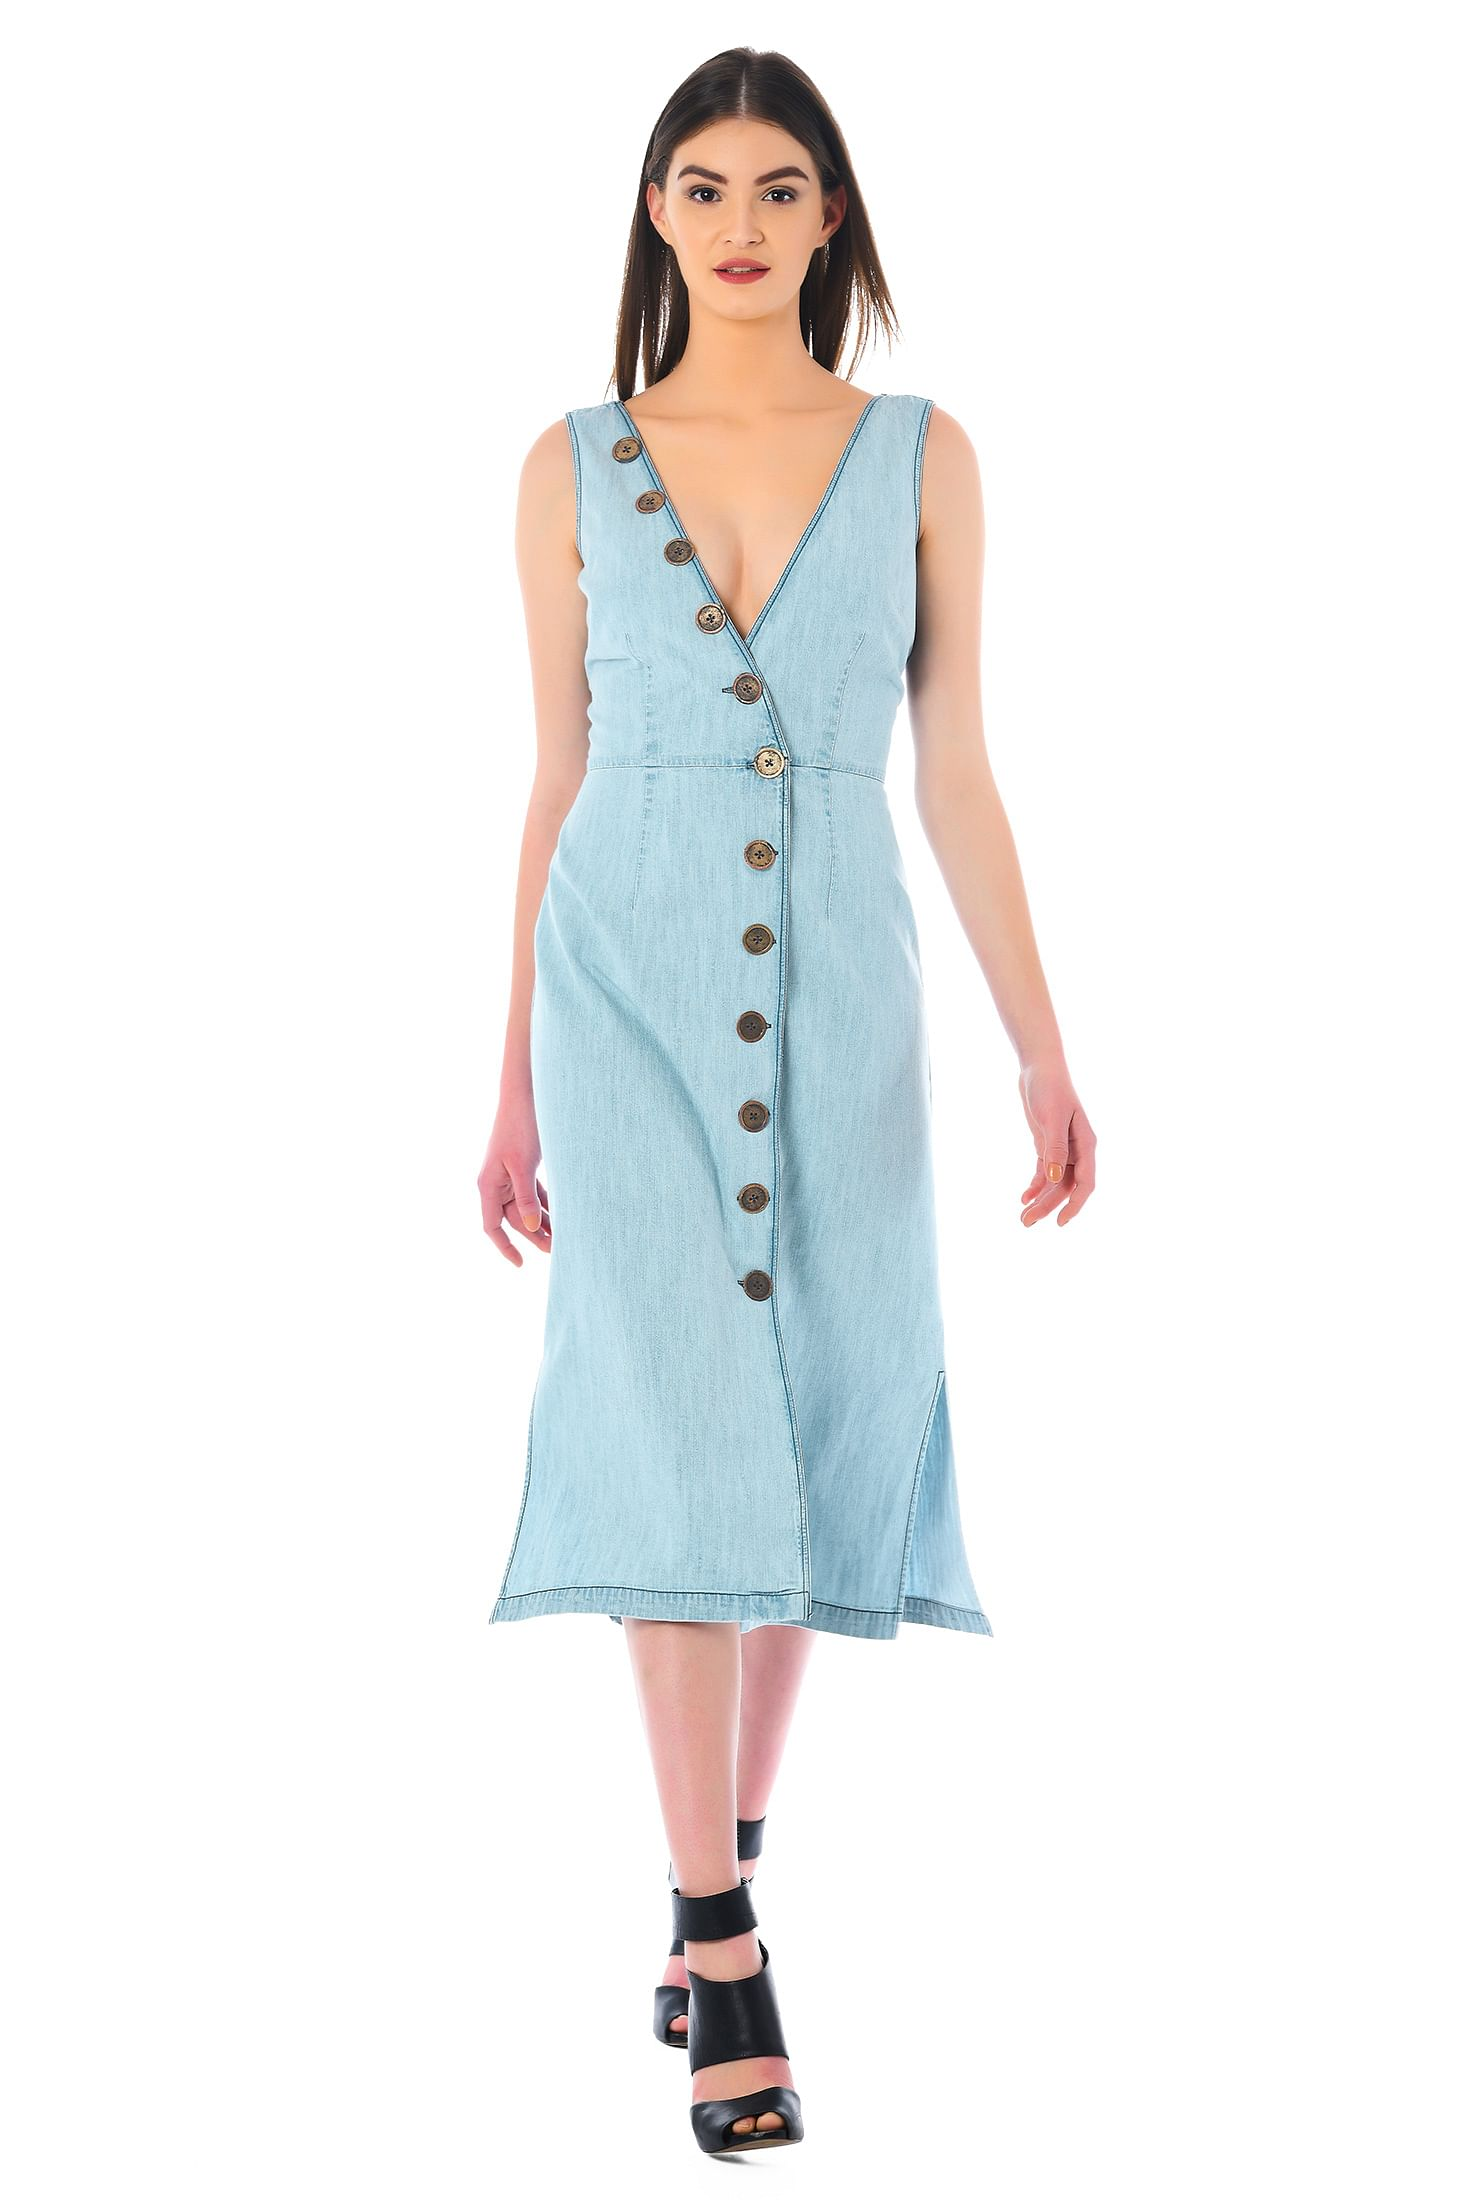 eShakti Women's Front button cotton denim A-line dress